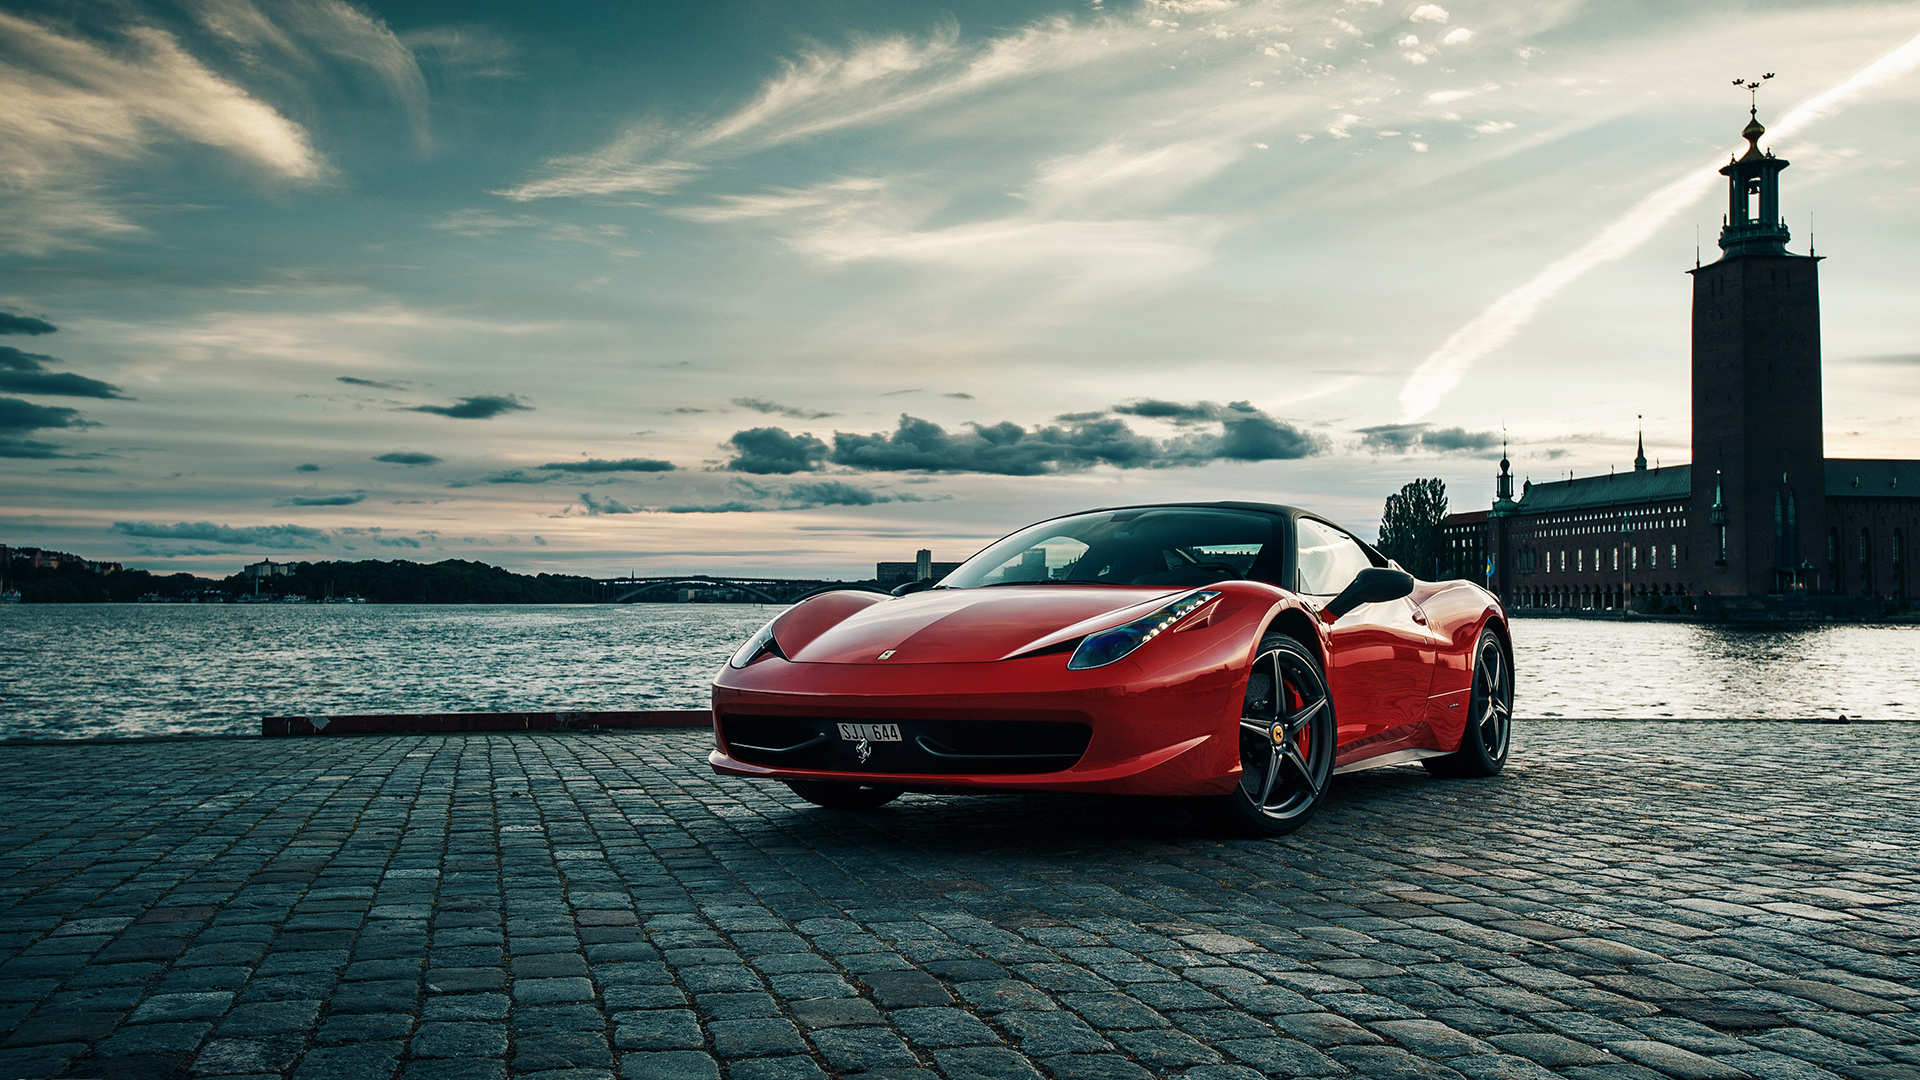 Ferrari 458 Italia 2013 Wallpaper HD Car Wallpapers